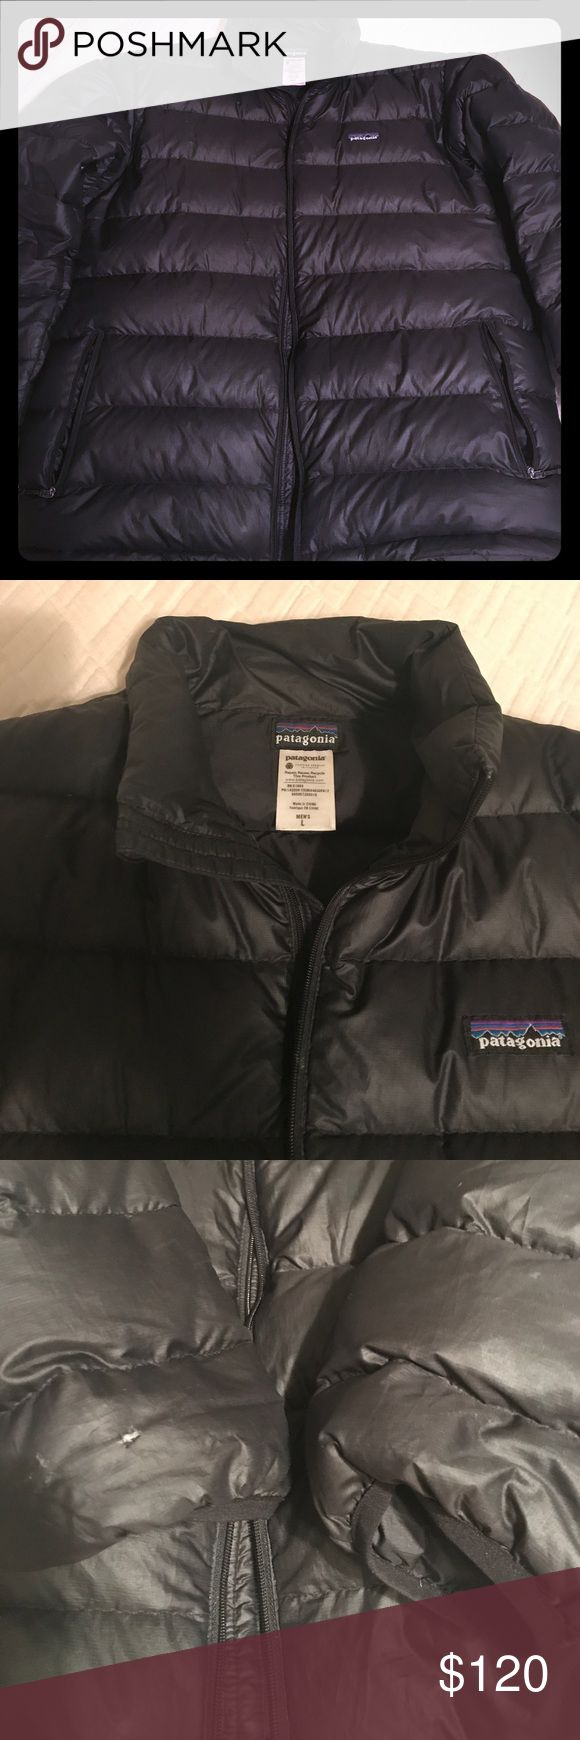 Patagonia down sweater men's coat Patagonia down sweater jacket. Men's size large. Black, without hood.  There is a very small hole on the right sleeve as shown in the picture. Otherwise in excellent condition. Patagonia Jackets & Coats Ski & Snowboard